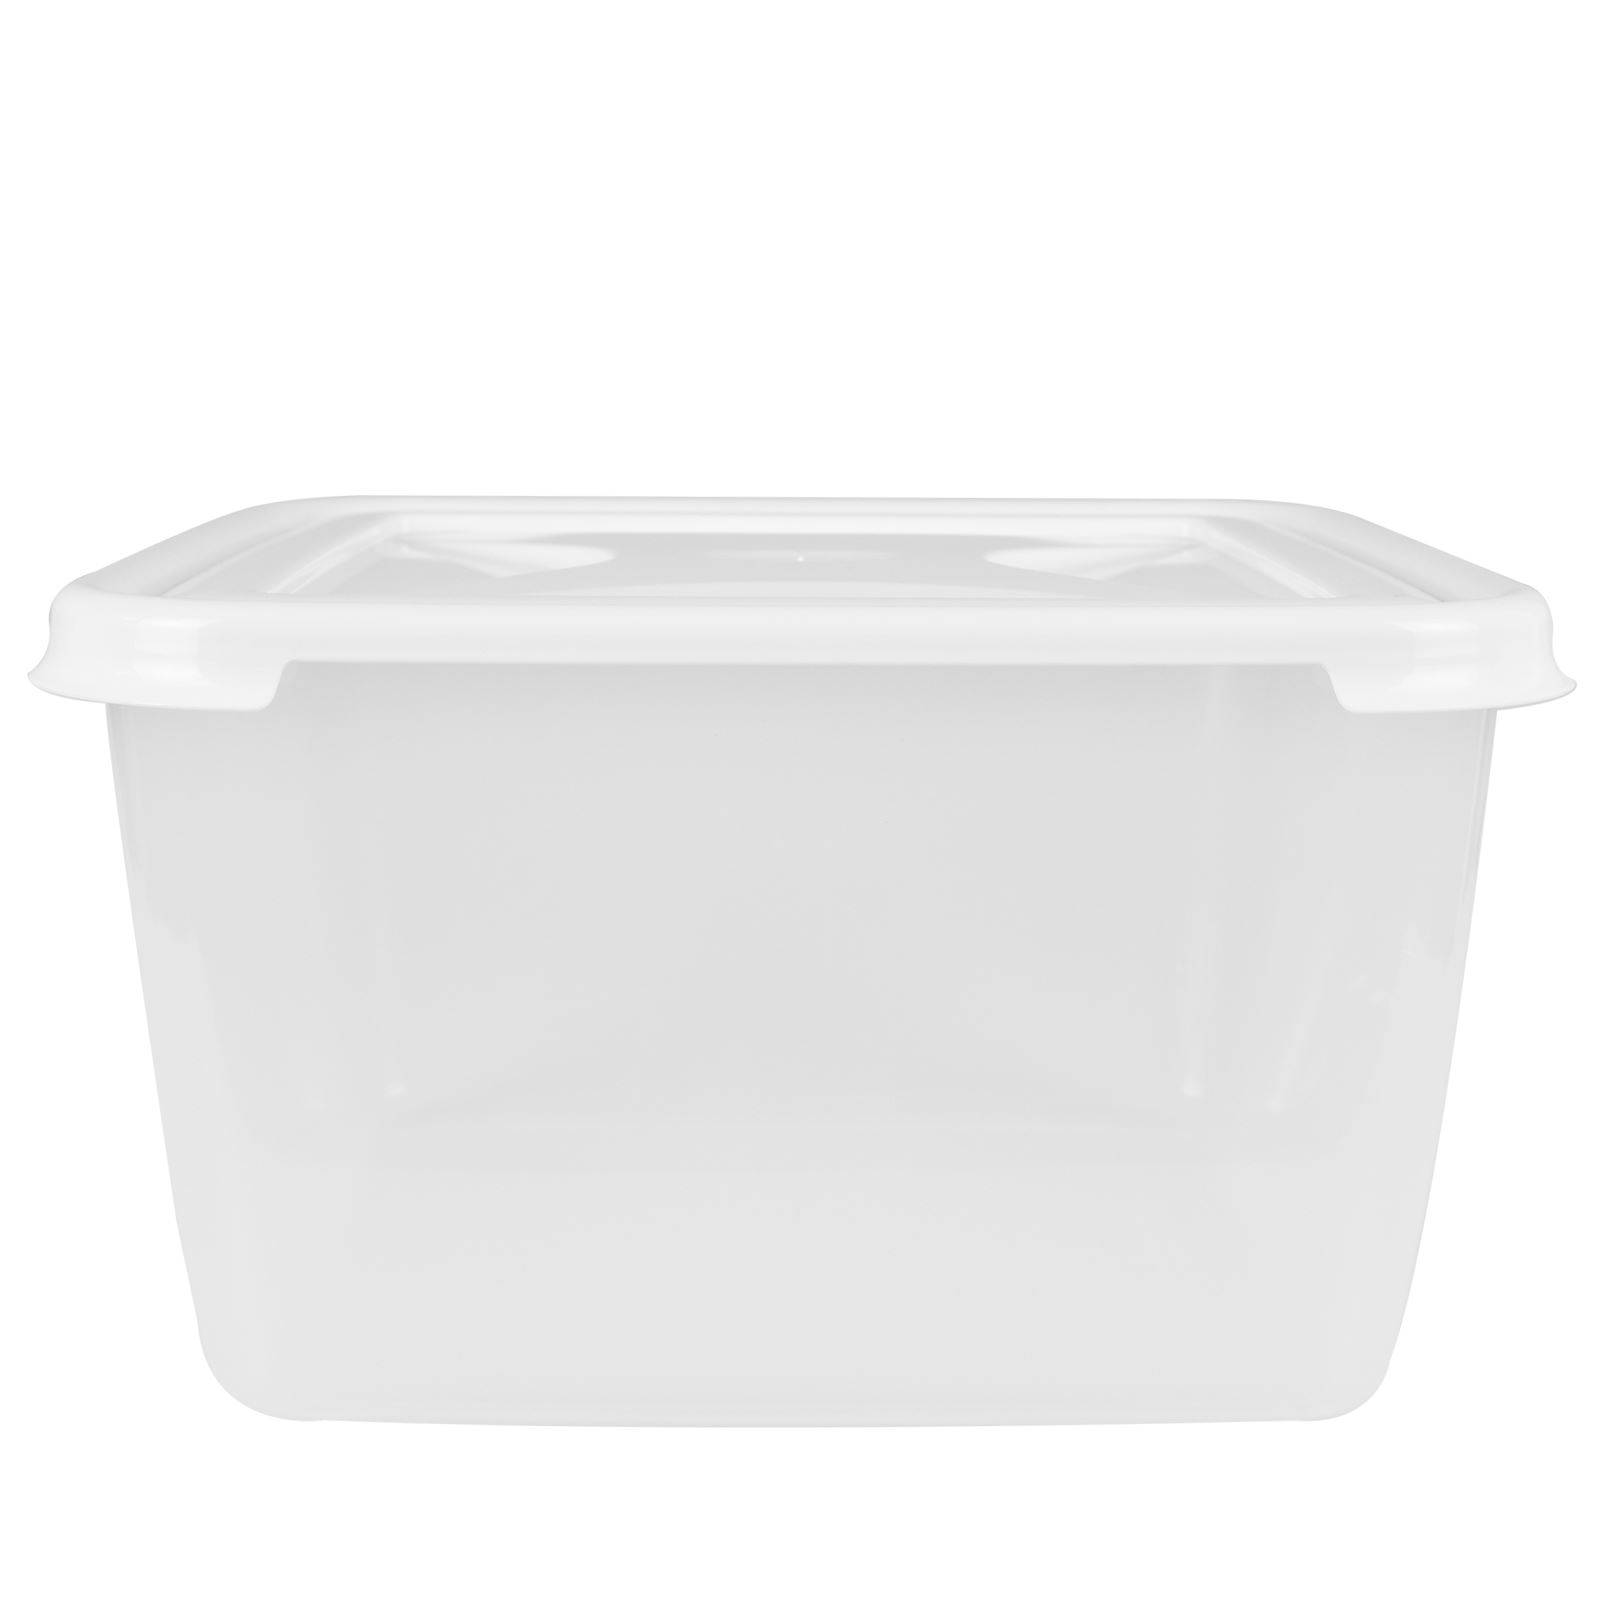 Wham Clear Plastic Food Storage Container Square Box